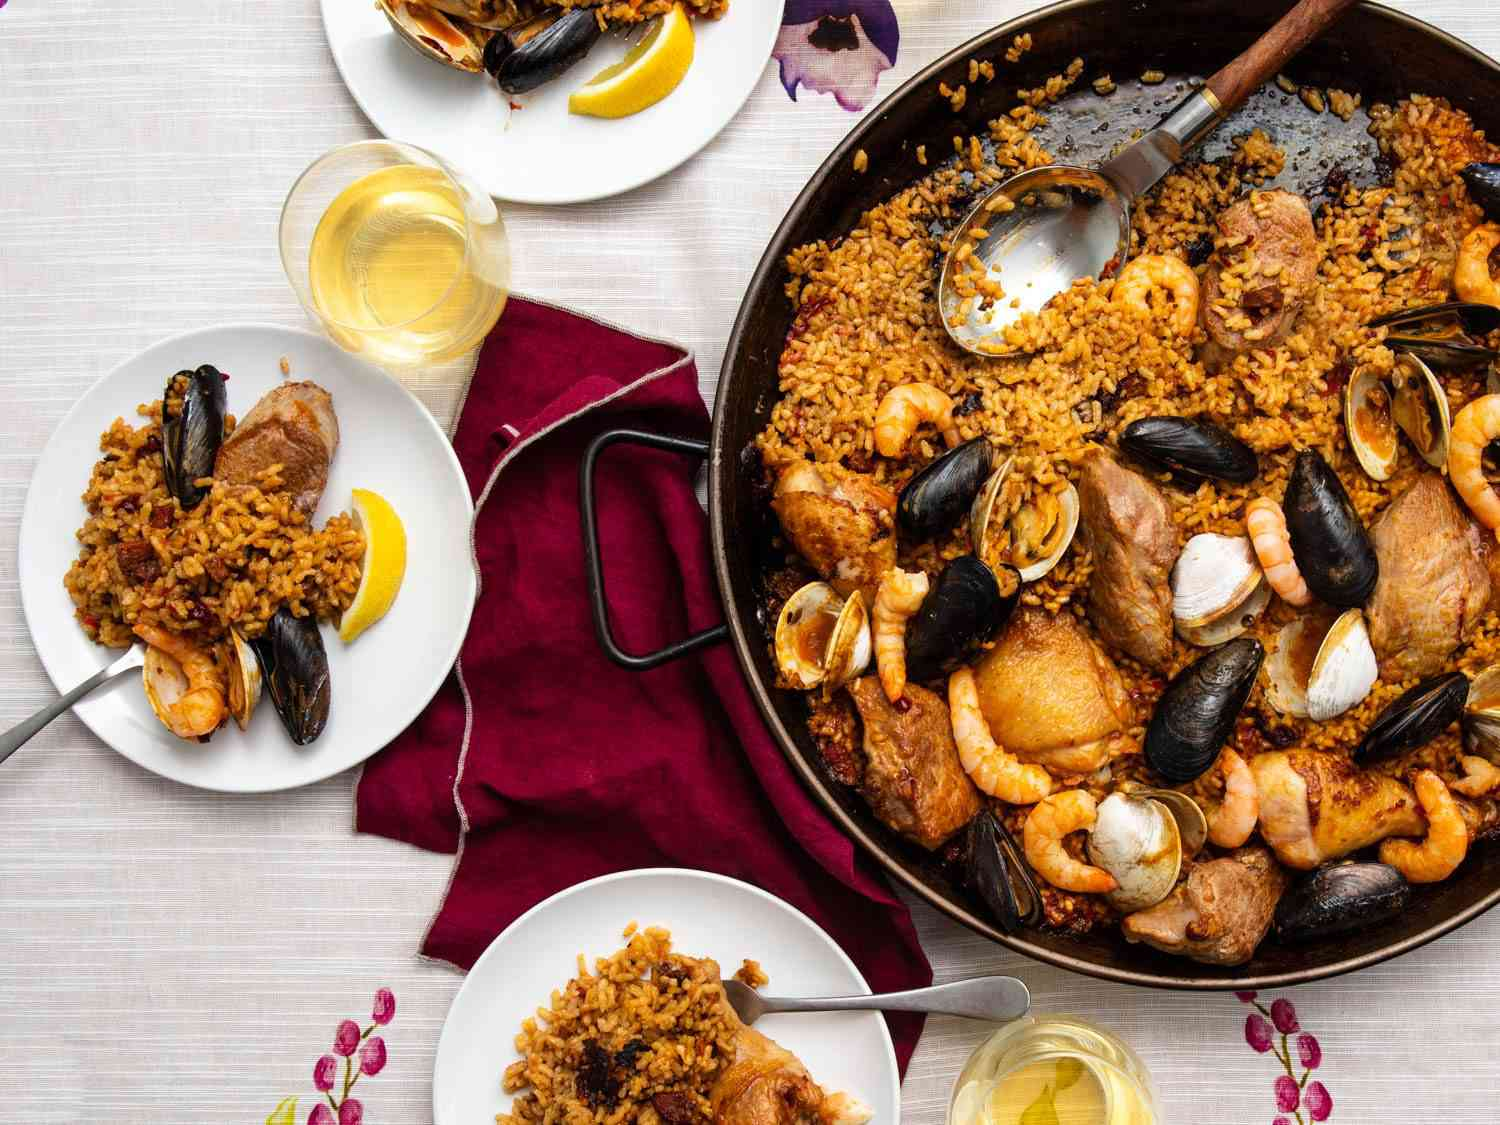 A view of a table with paella mixta served on it, showing individual plates plus the big paella pan, and wind glasses.